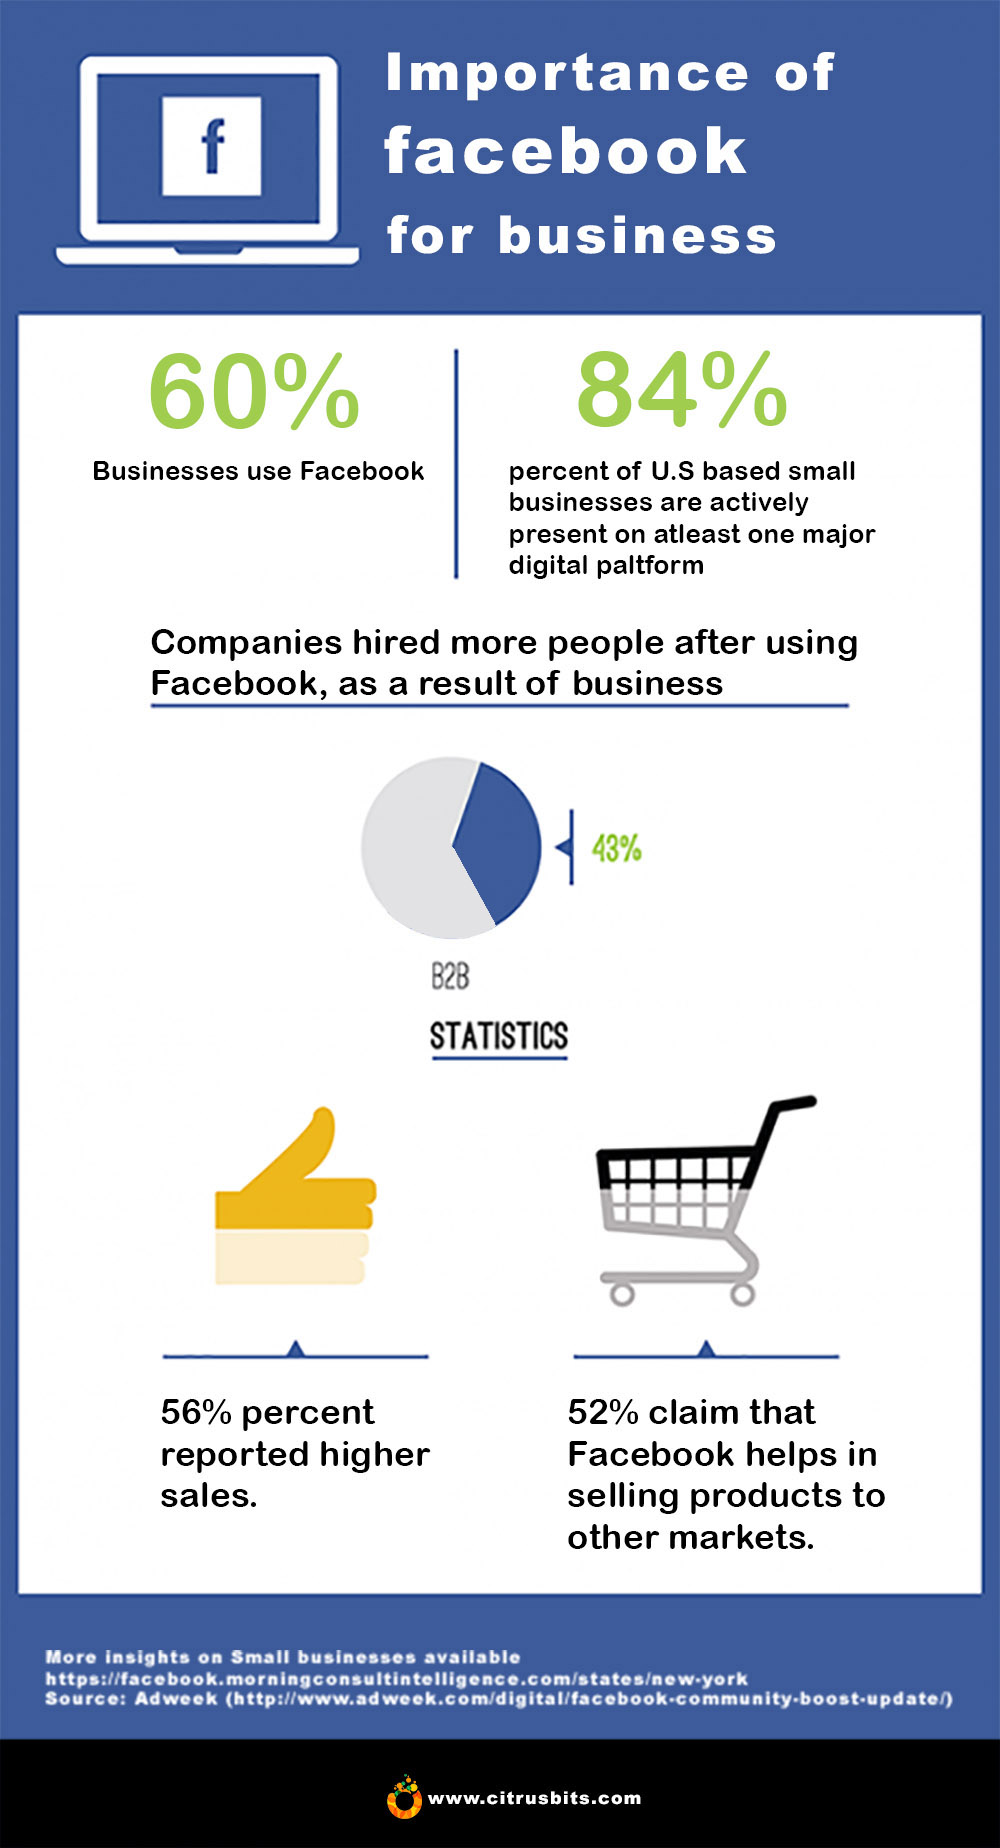 infographic-importance-of-facebook-for-business-pros-cons